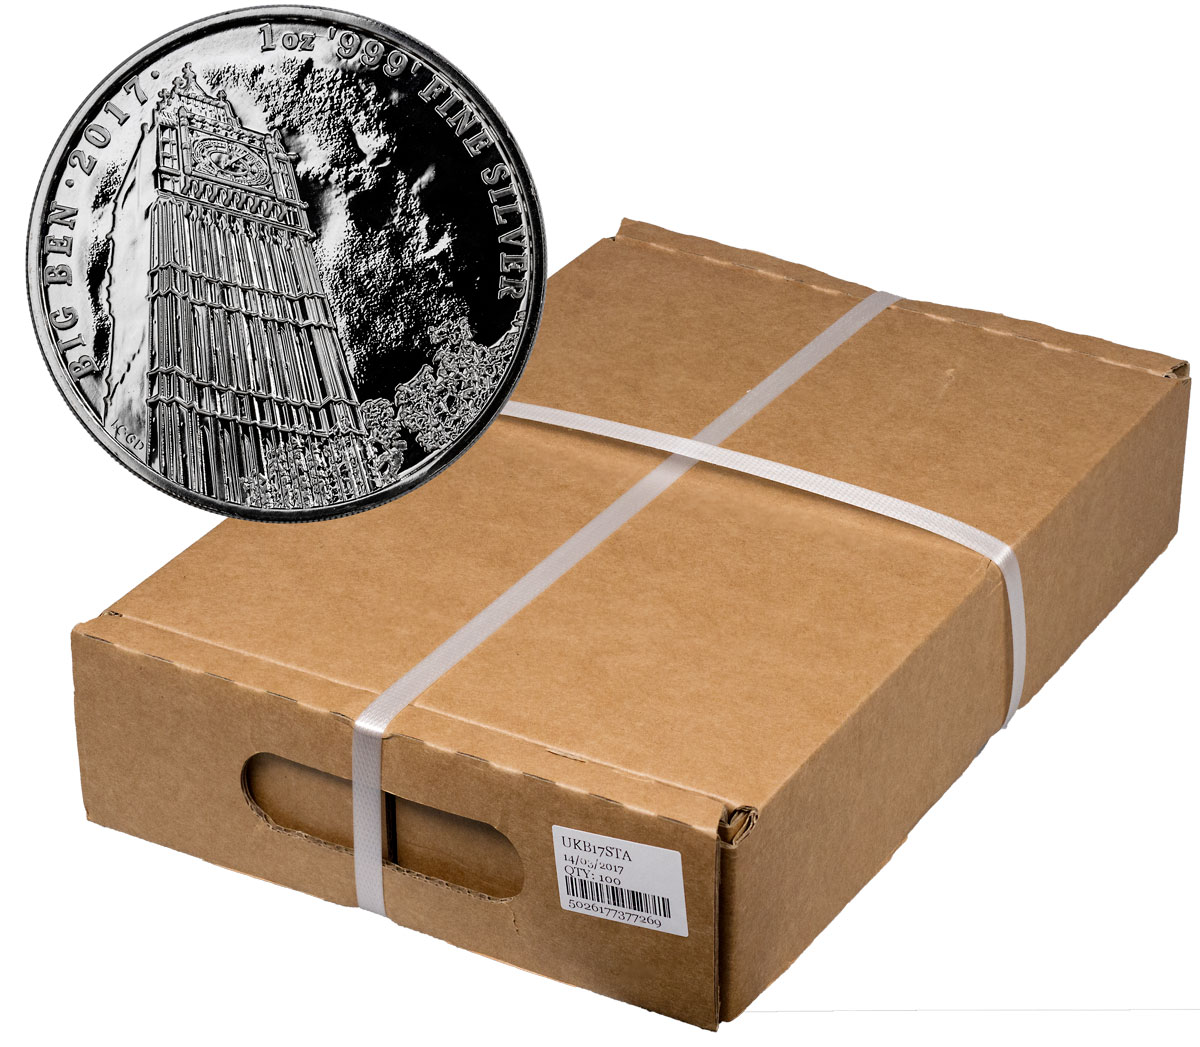 Monster Box of 100 - 2017 Great Britain Landmarks of Britain - Big Ben 1 oz Silver £2 Coins GEM BU Original Mint Capsule